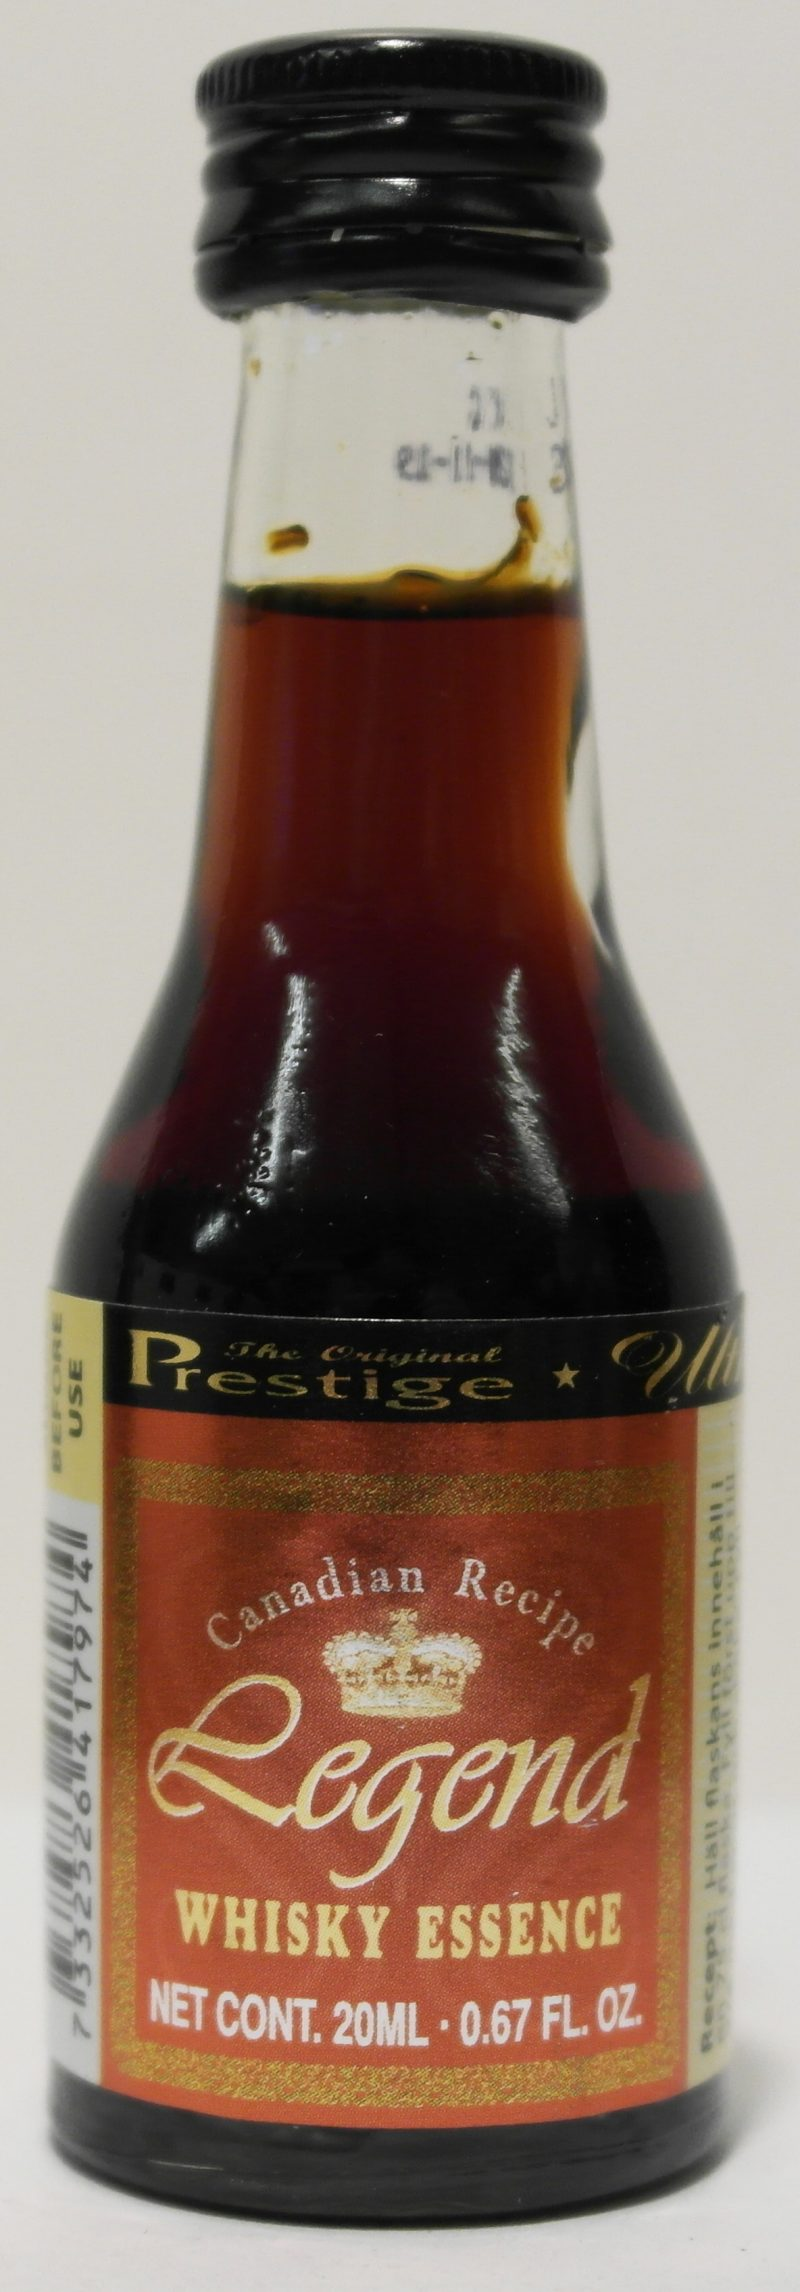 Prestige Canadian Recipe Legend Whisky Essence